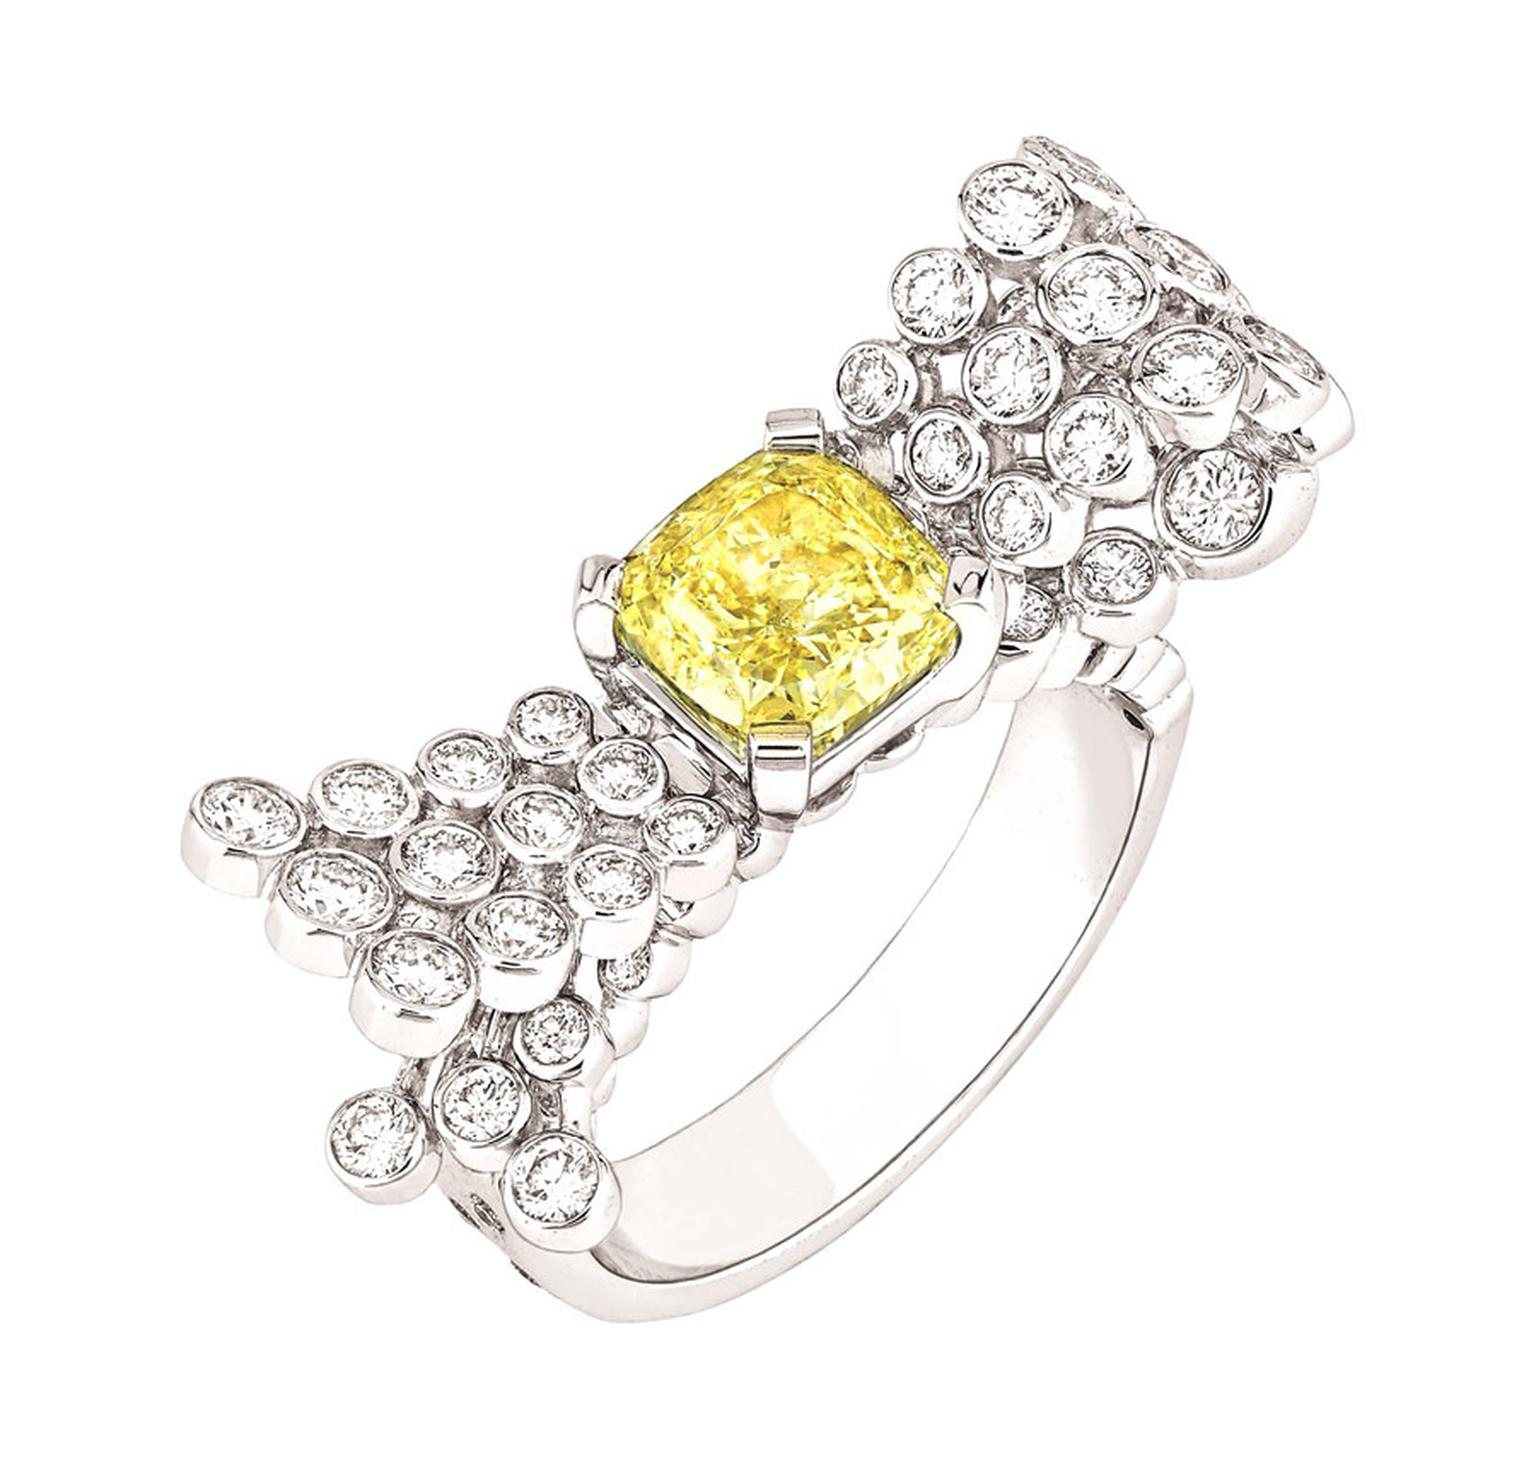 Chanel-Bague-Ruban-Mademoiselle-Dia-Jaune-PM.jpg